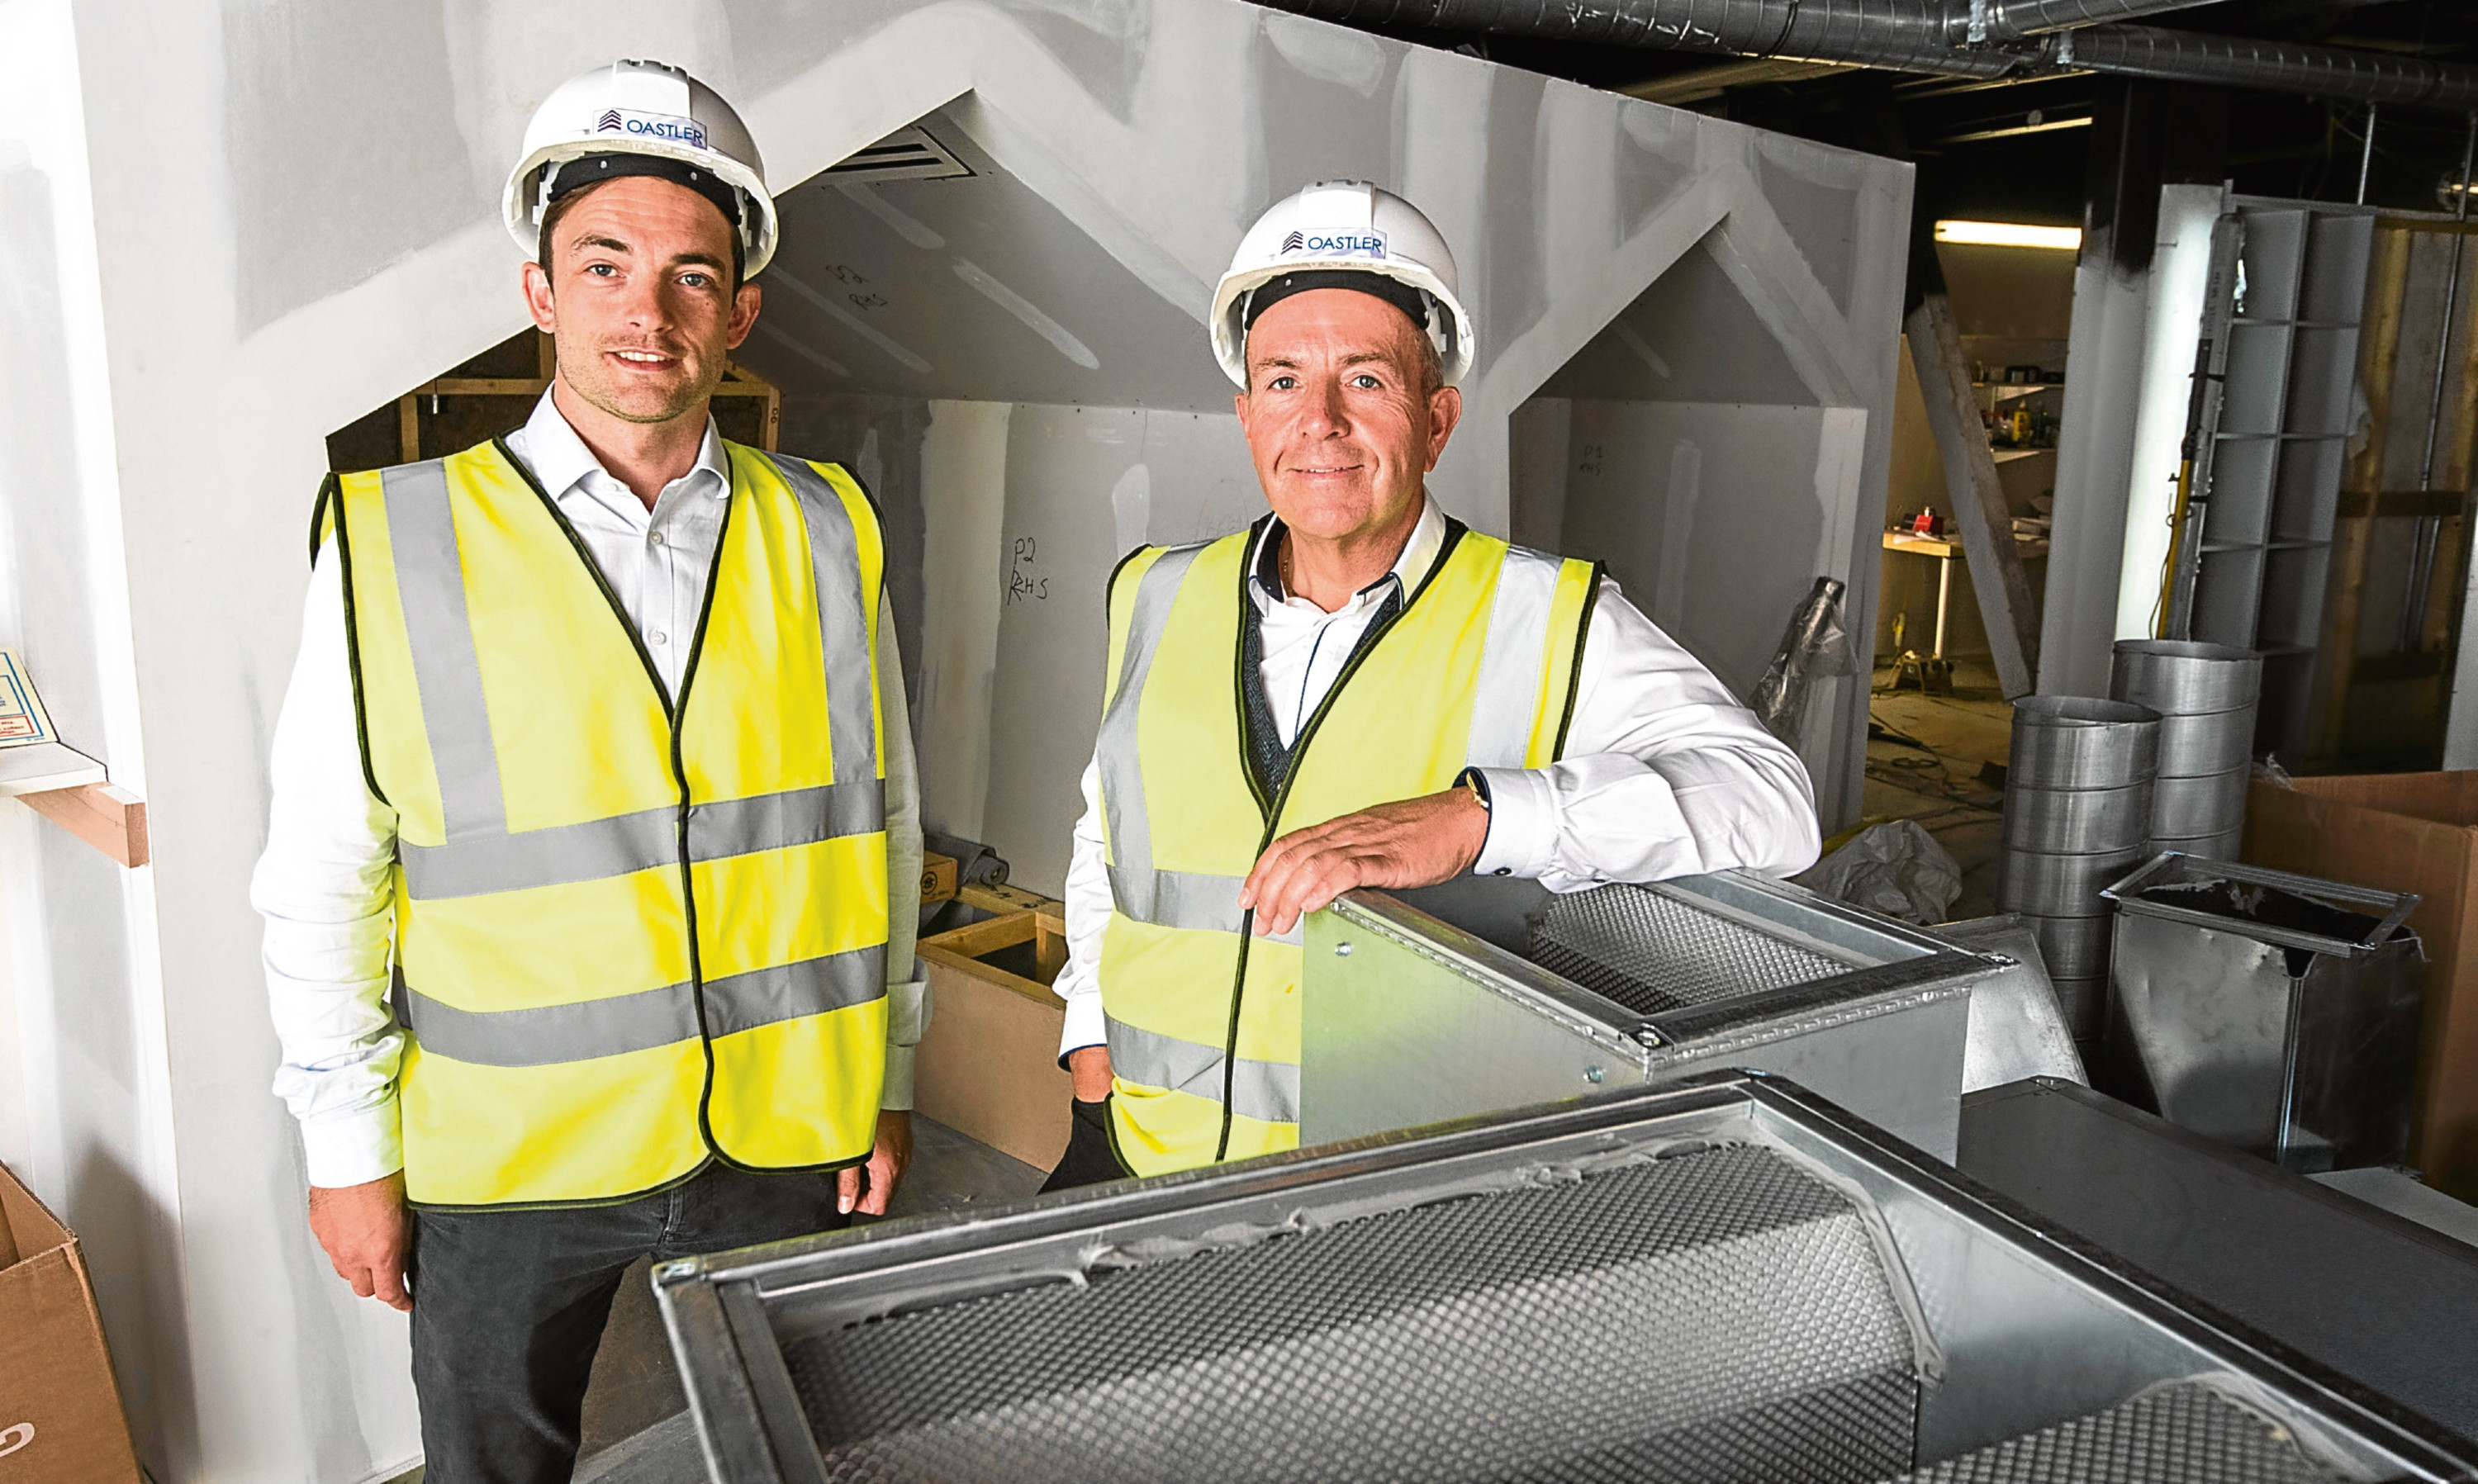 Brian McNicoll, enterprise and entrepreneurship manager at Dundee University with Professor Gary McEwan at the soon-to-be completed Elevator hub in Dundee.